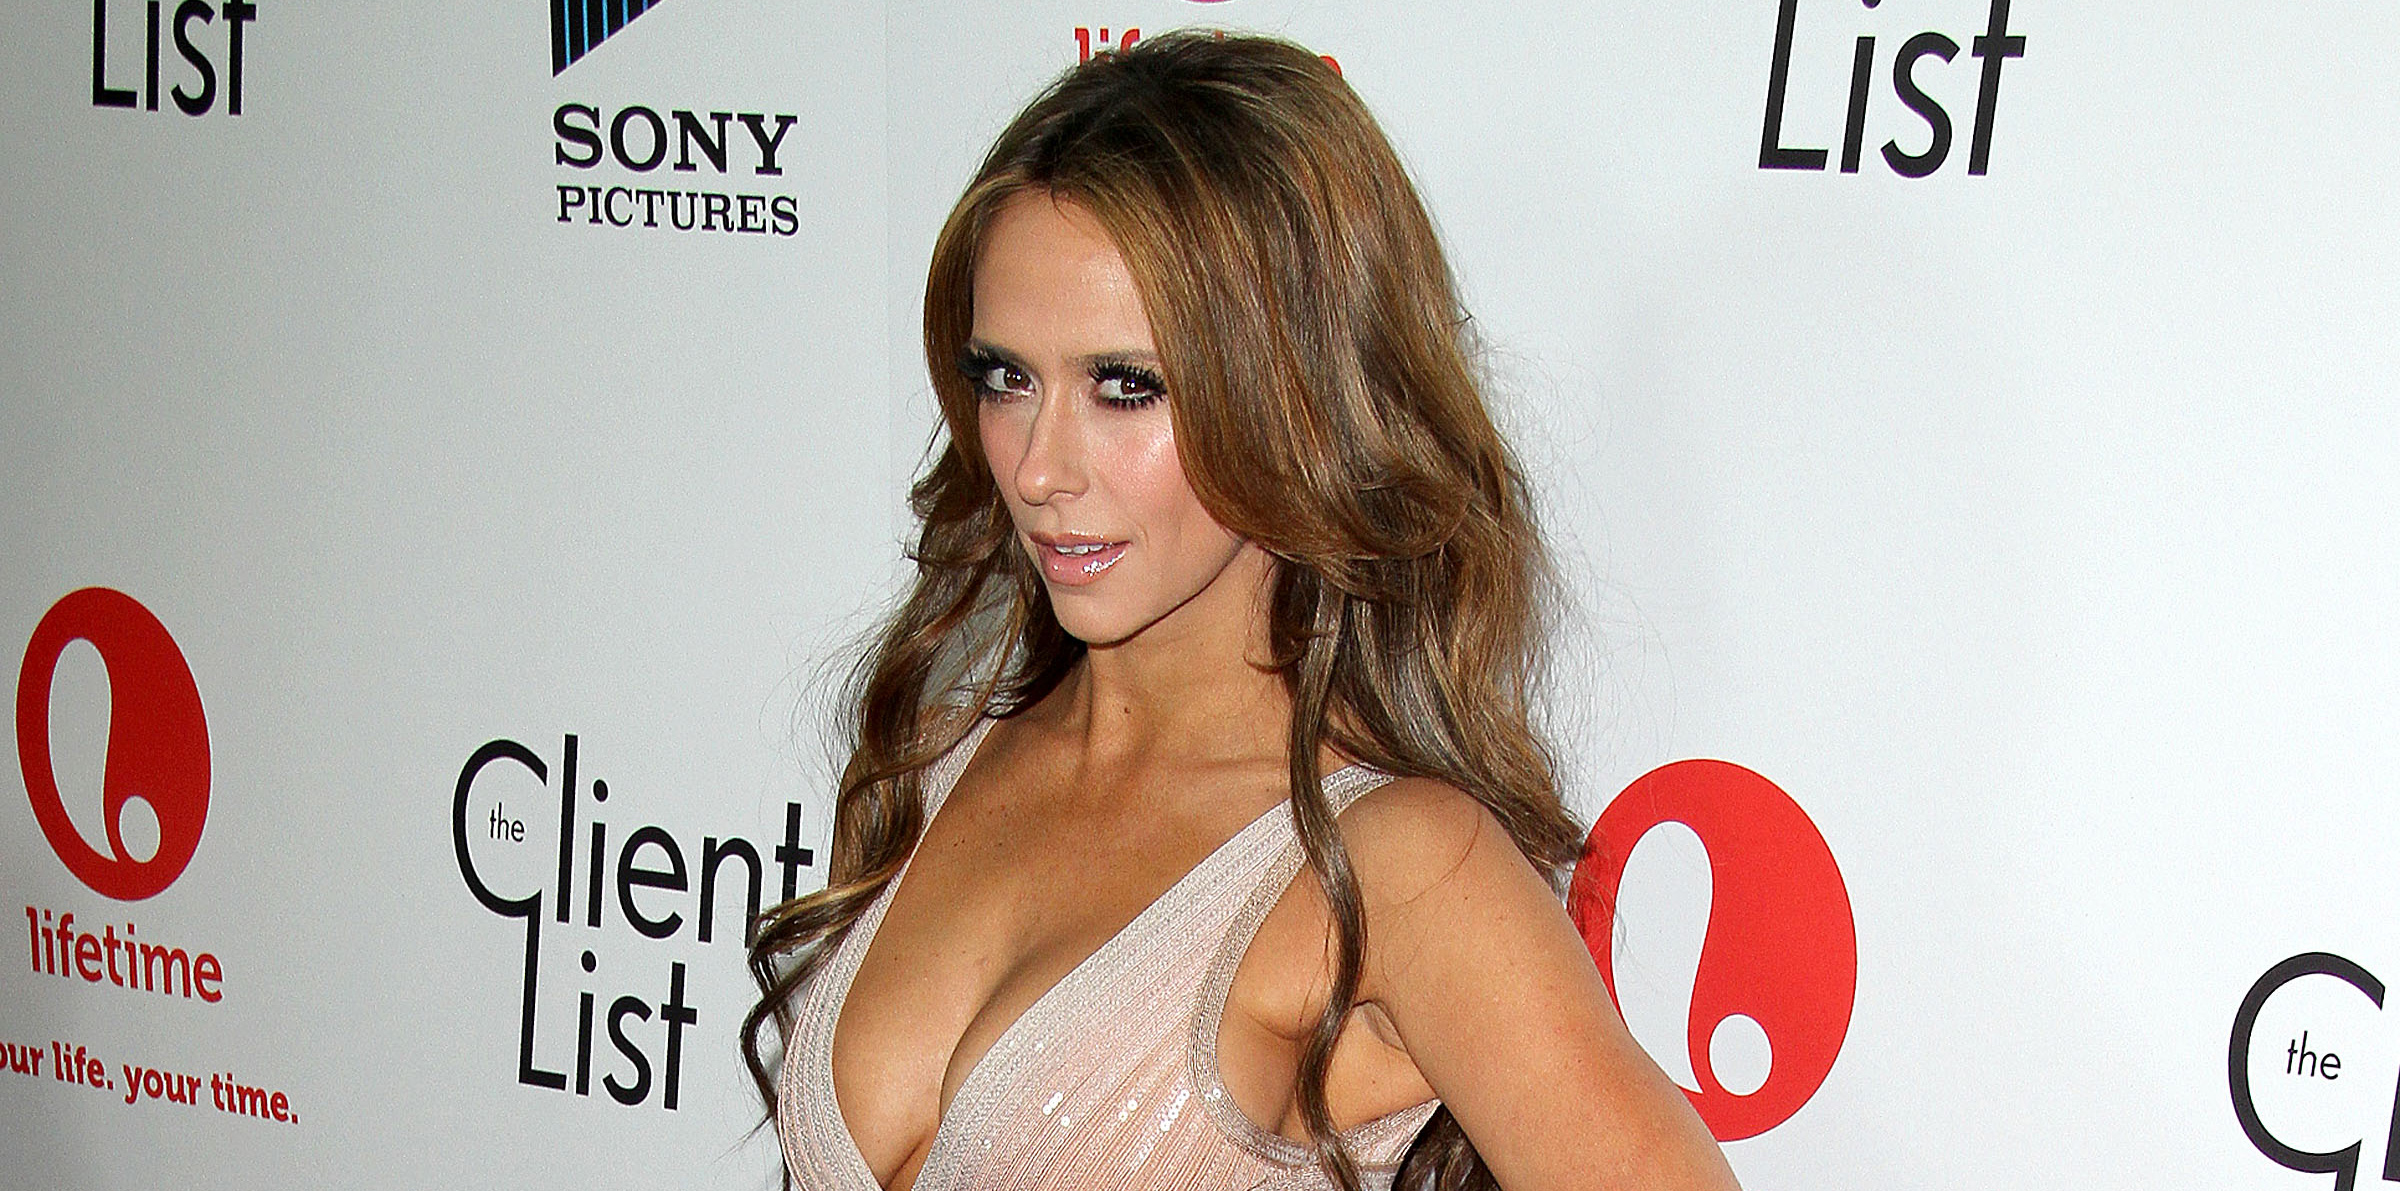 jennifer-love-hewitt-client-list-0405